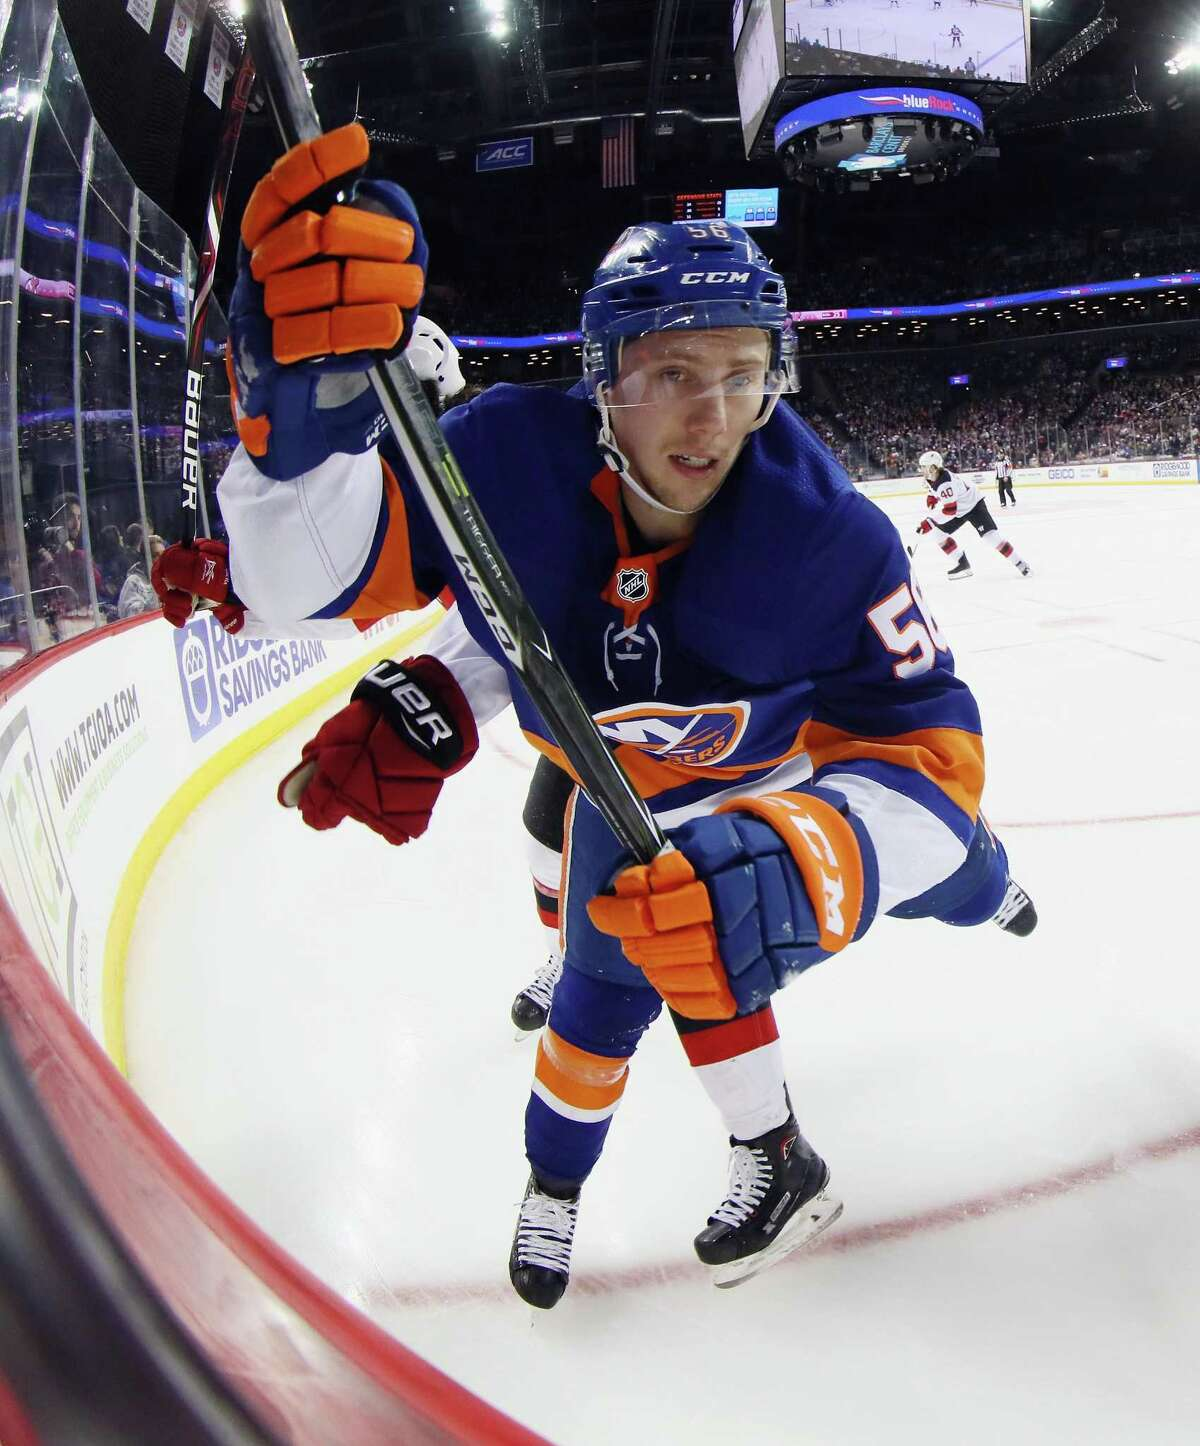 NEW YORK, NY - JANUARY 07: Tanner Fritz #56 of the New York Islanders skates against the New Jersey Devils at the Barclays Center on January 7, 2018 in the Brooklyn borough of New York City. (Photo by Bruce Bennett/Getty Images)